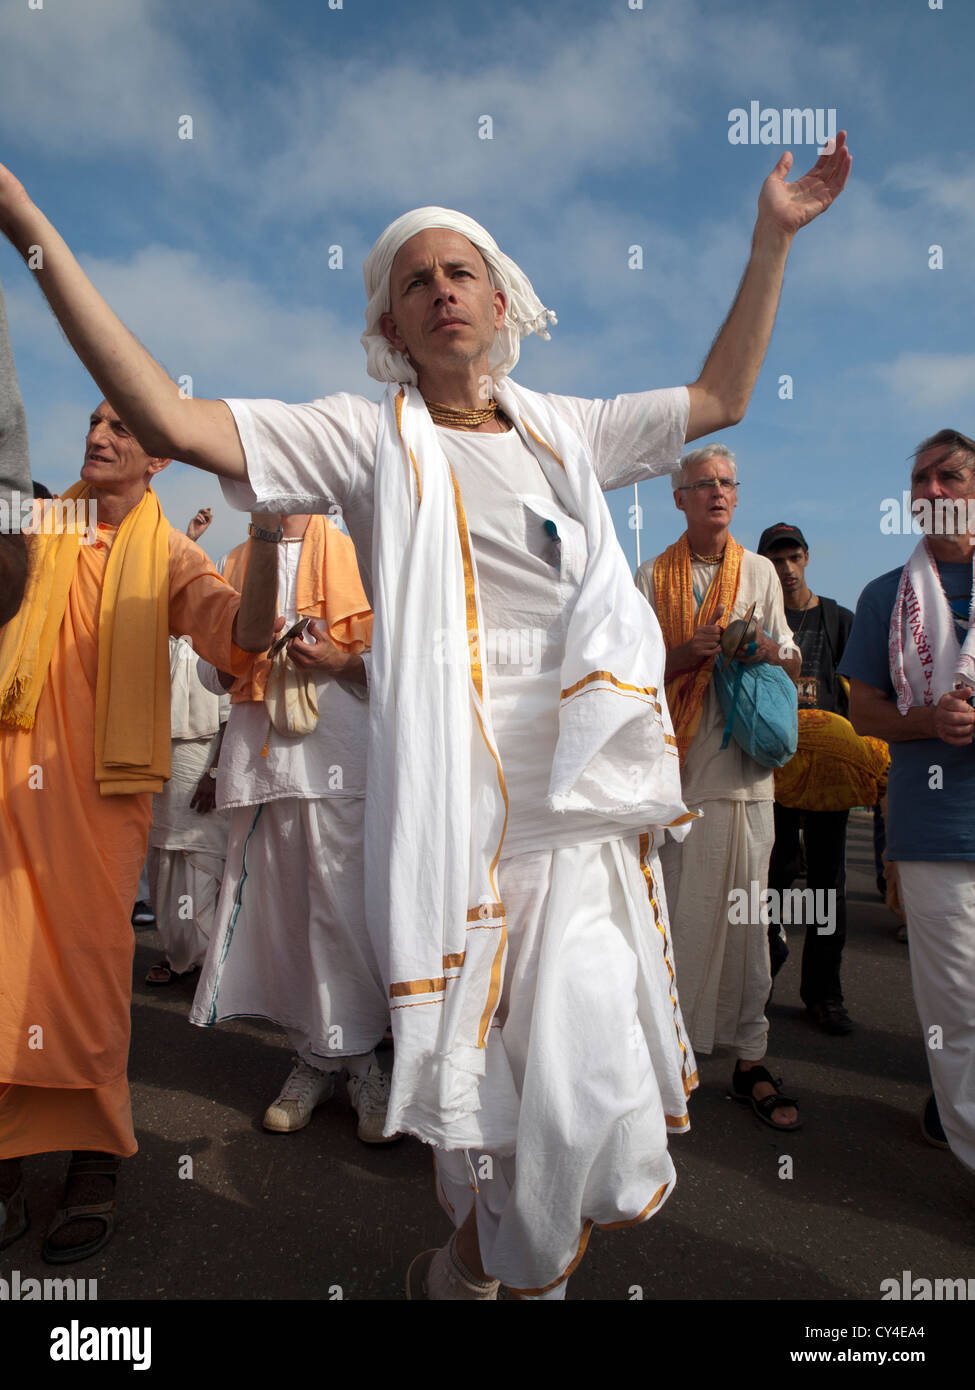 Members of the Hare Krishna movement gather to sing and dance on the seafront at Brighton. - Stock Image